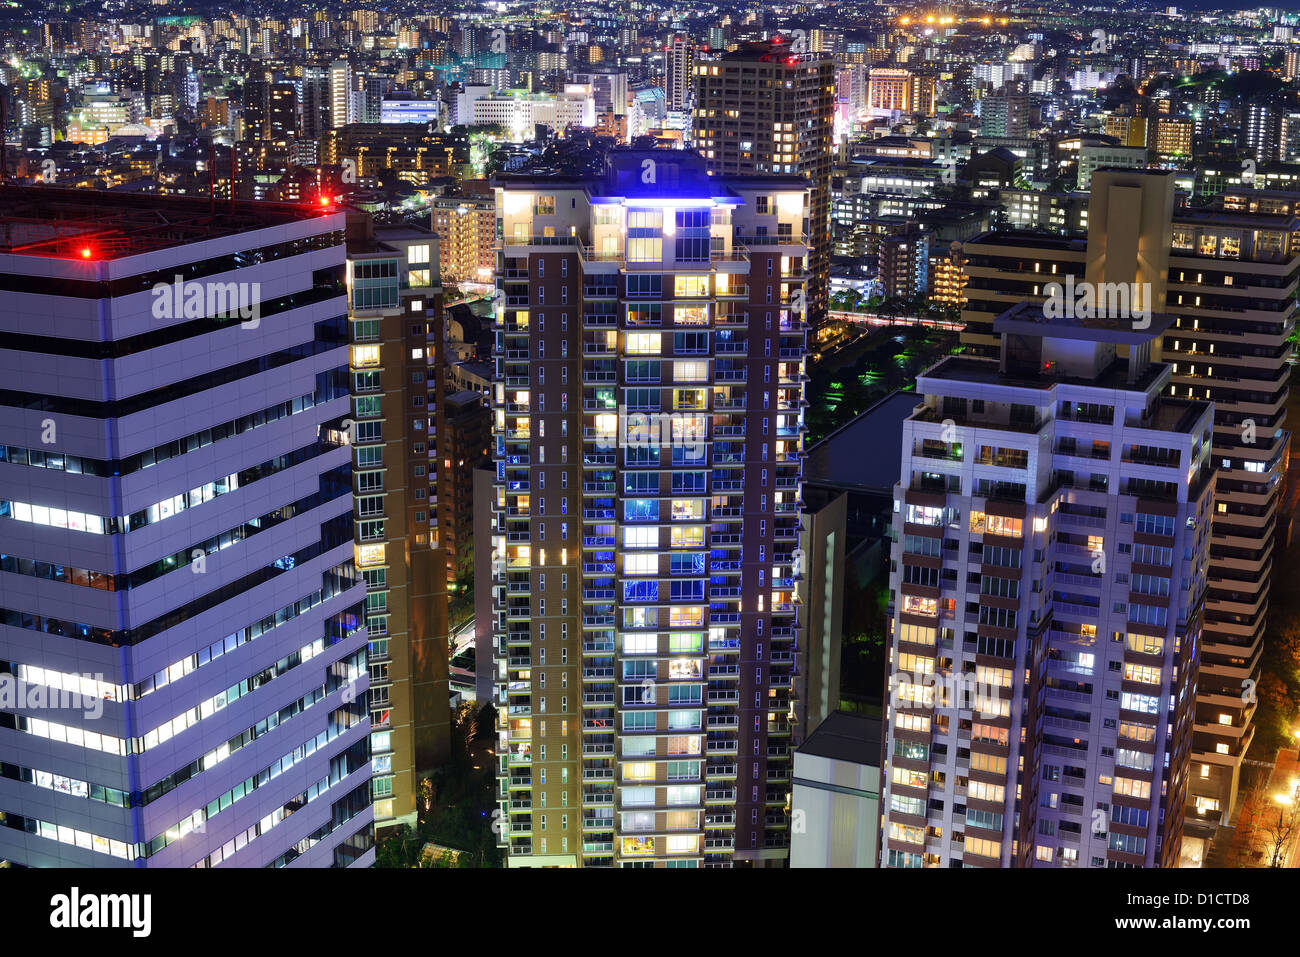 Cityscape of Fukuoka, Japan. - Stock Image